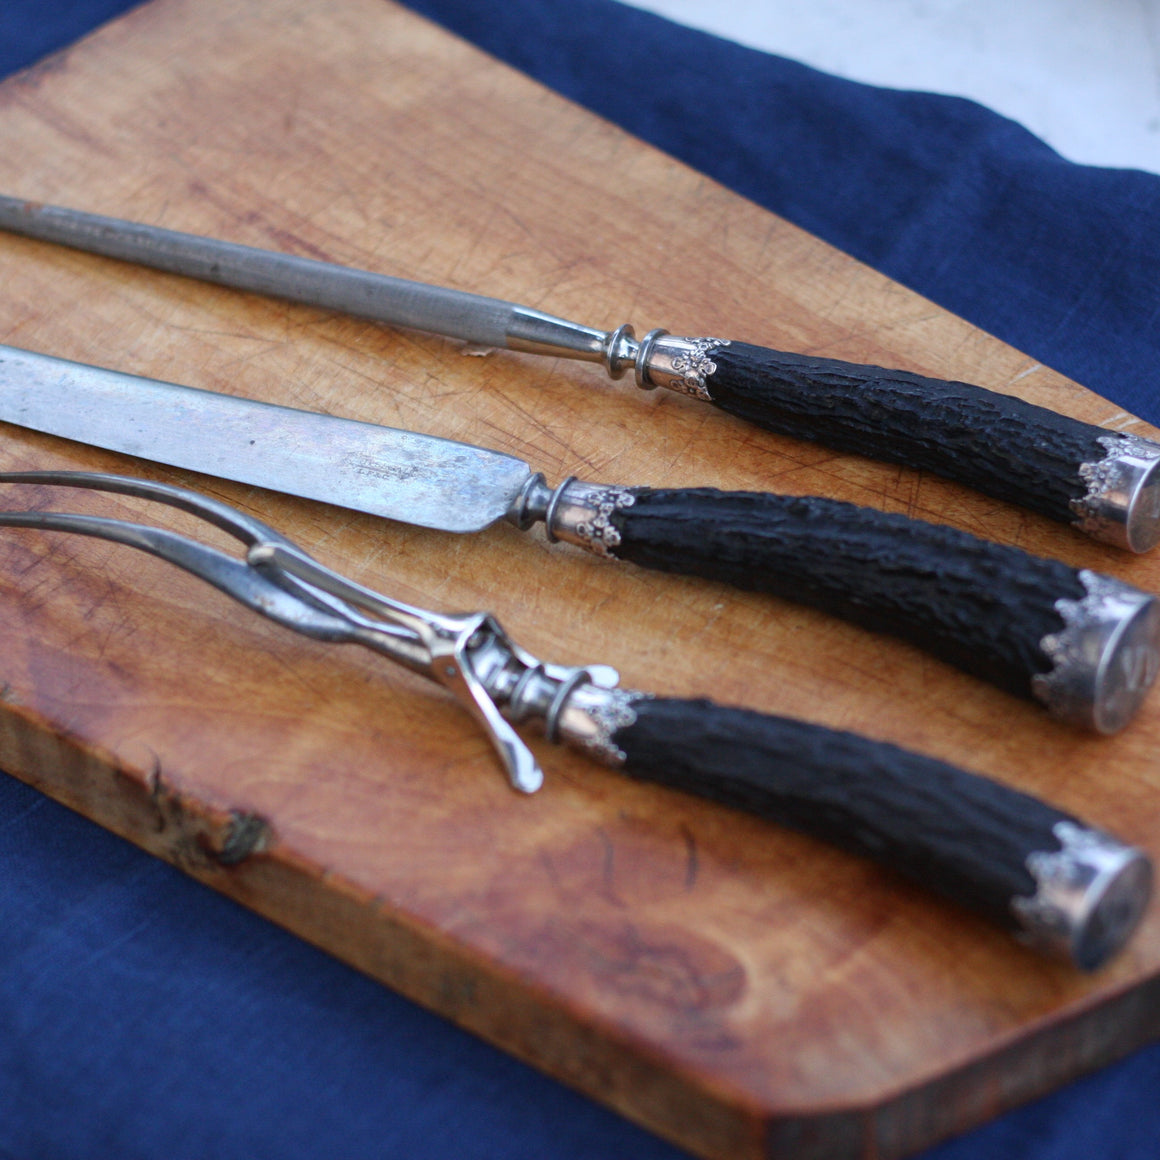 Antique Carving Set - 3 Pieces